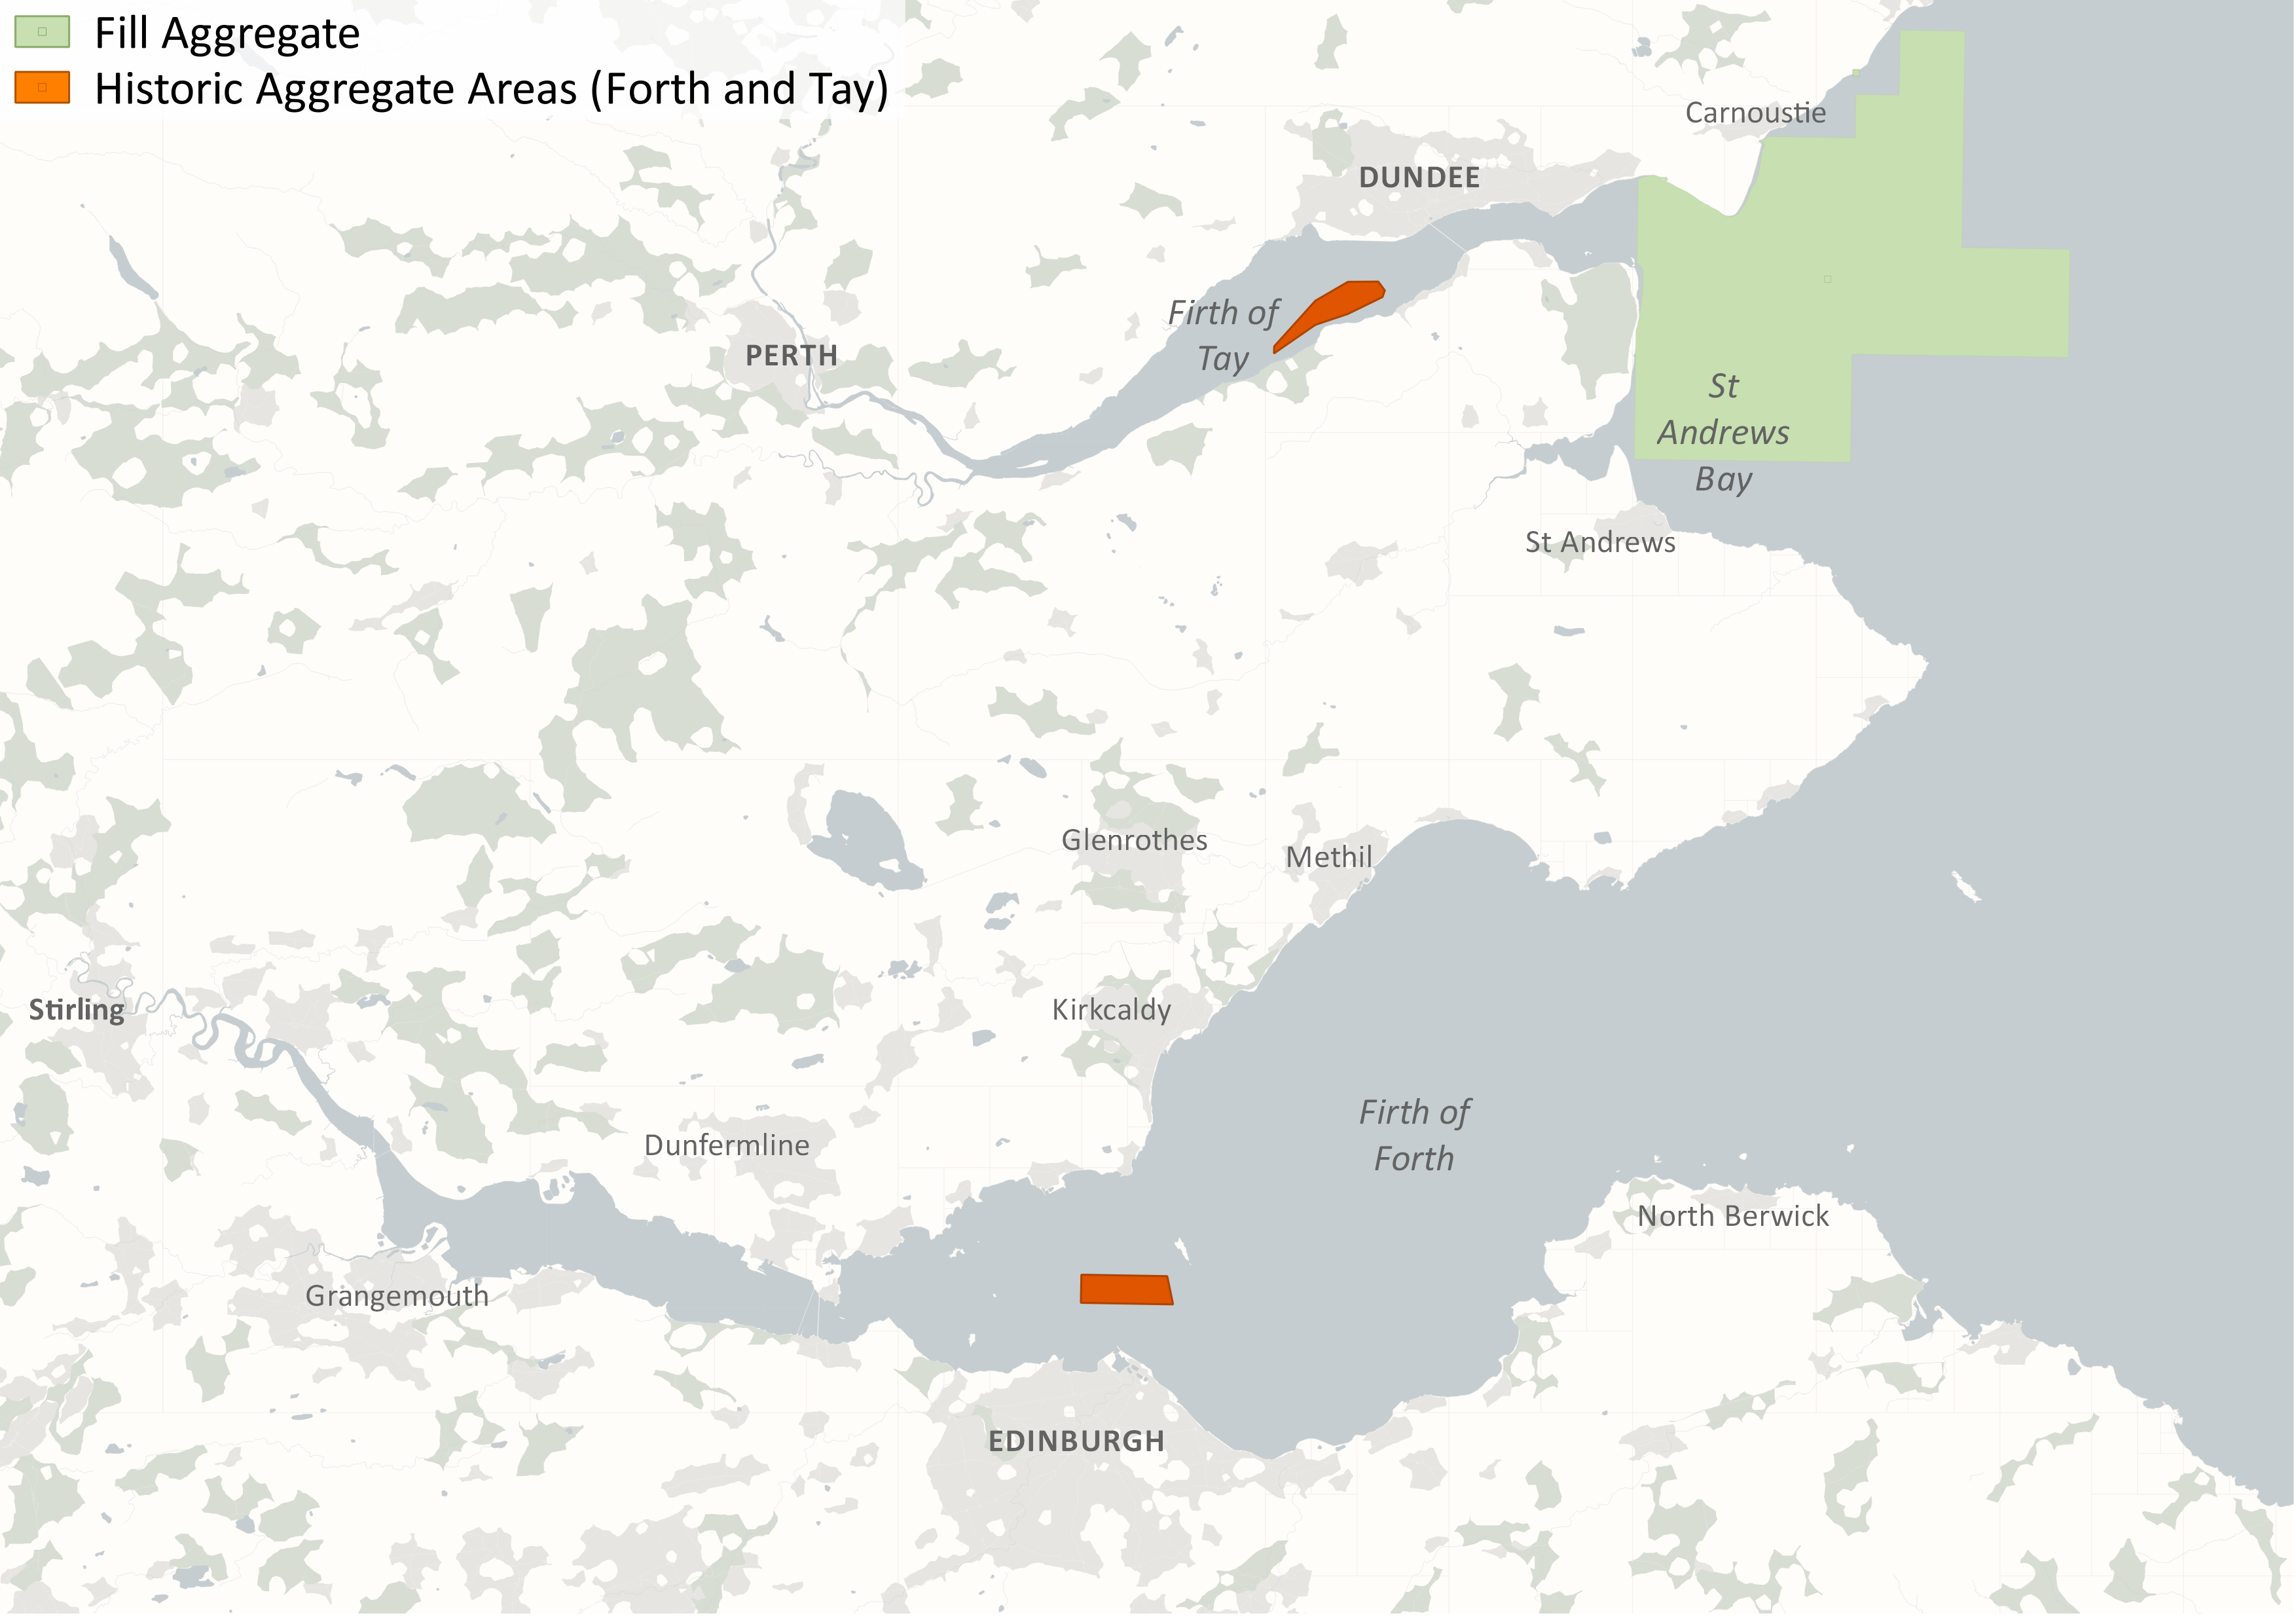 Figure 1: Historical areas in the Forth & Tay Scottish Marine Region. Source: Marine Scotland and The Crown Estate.